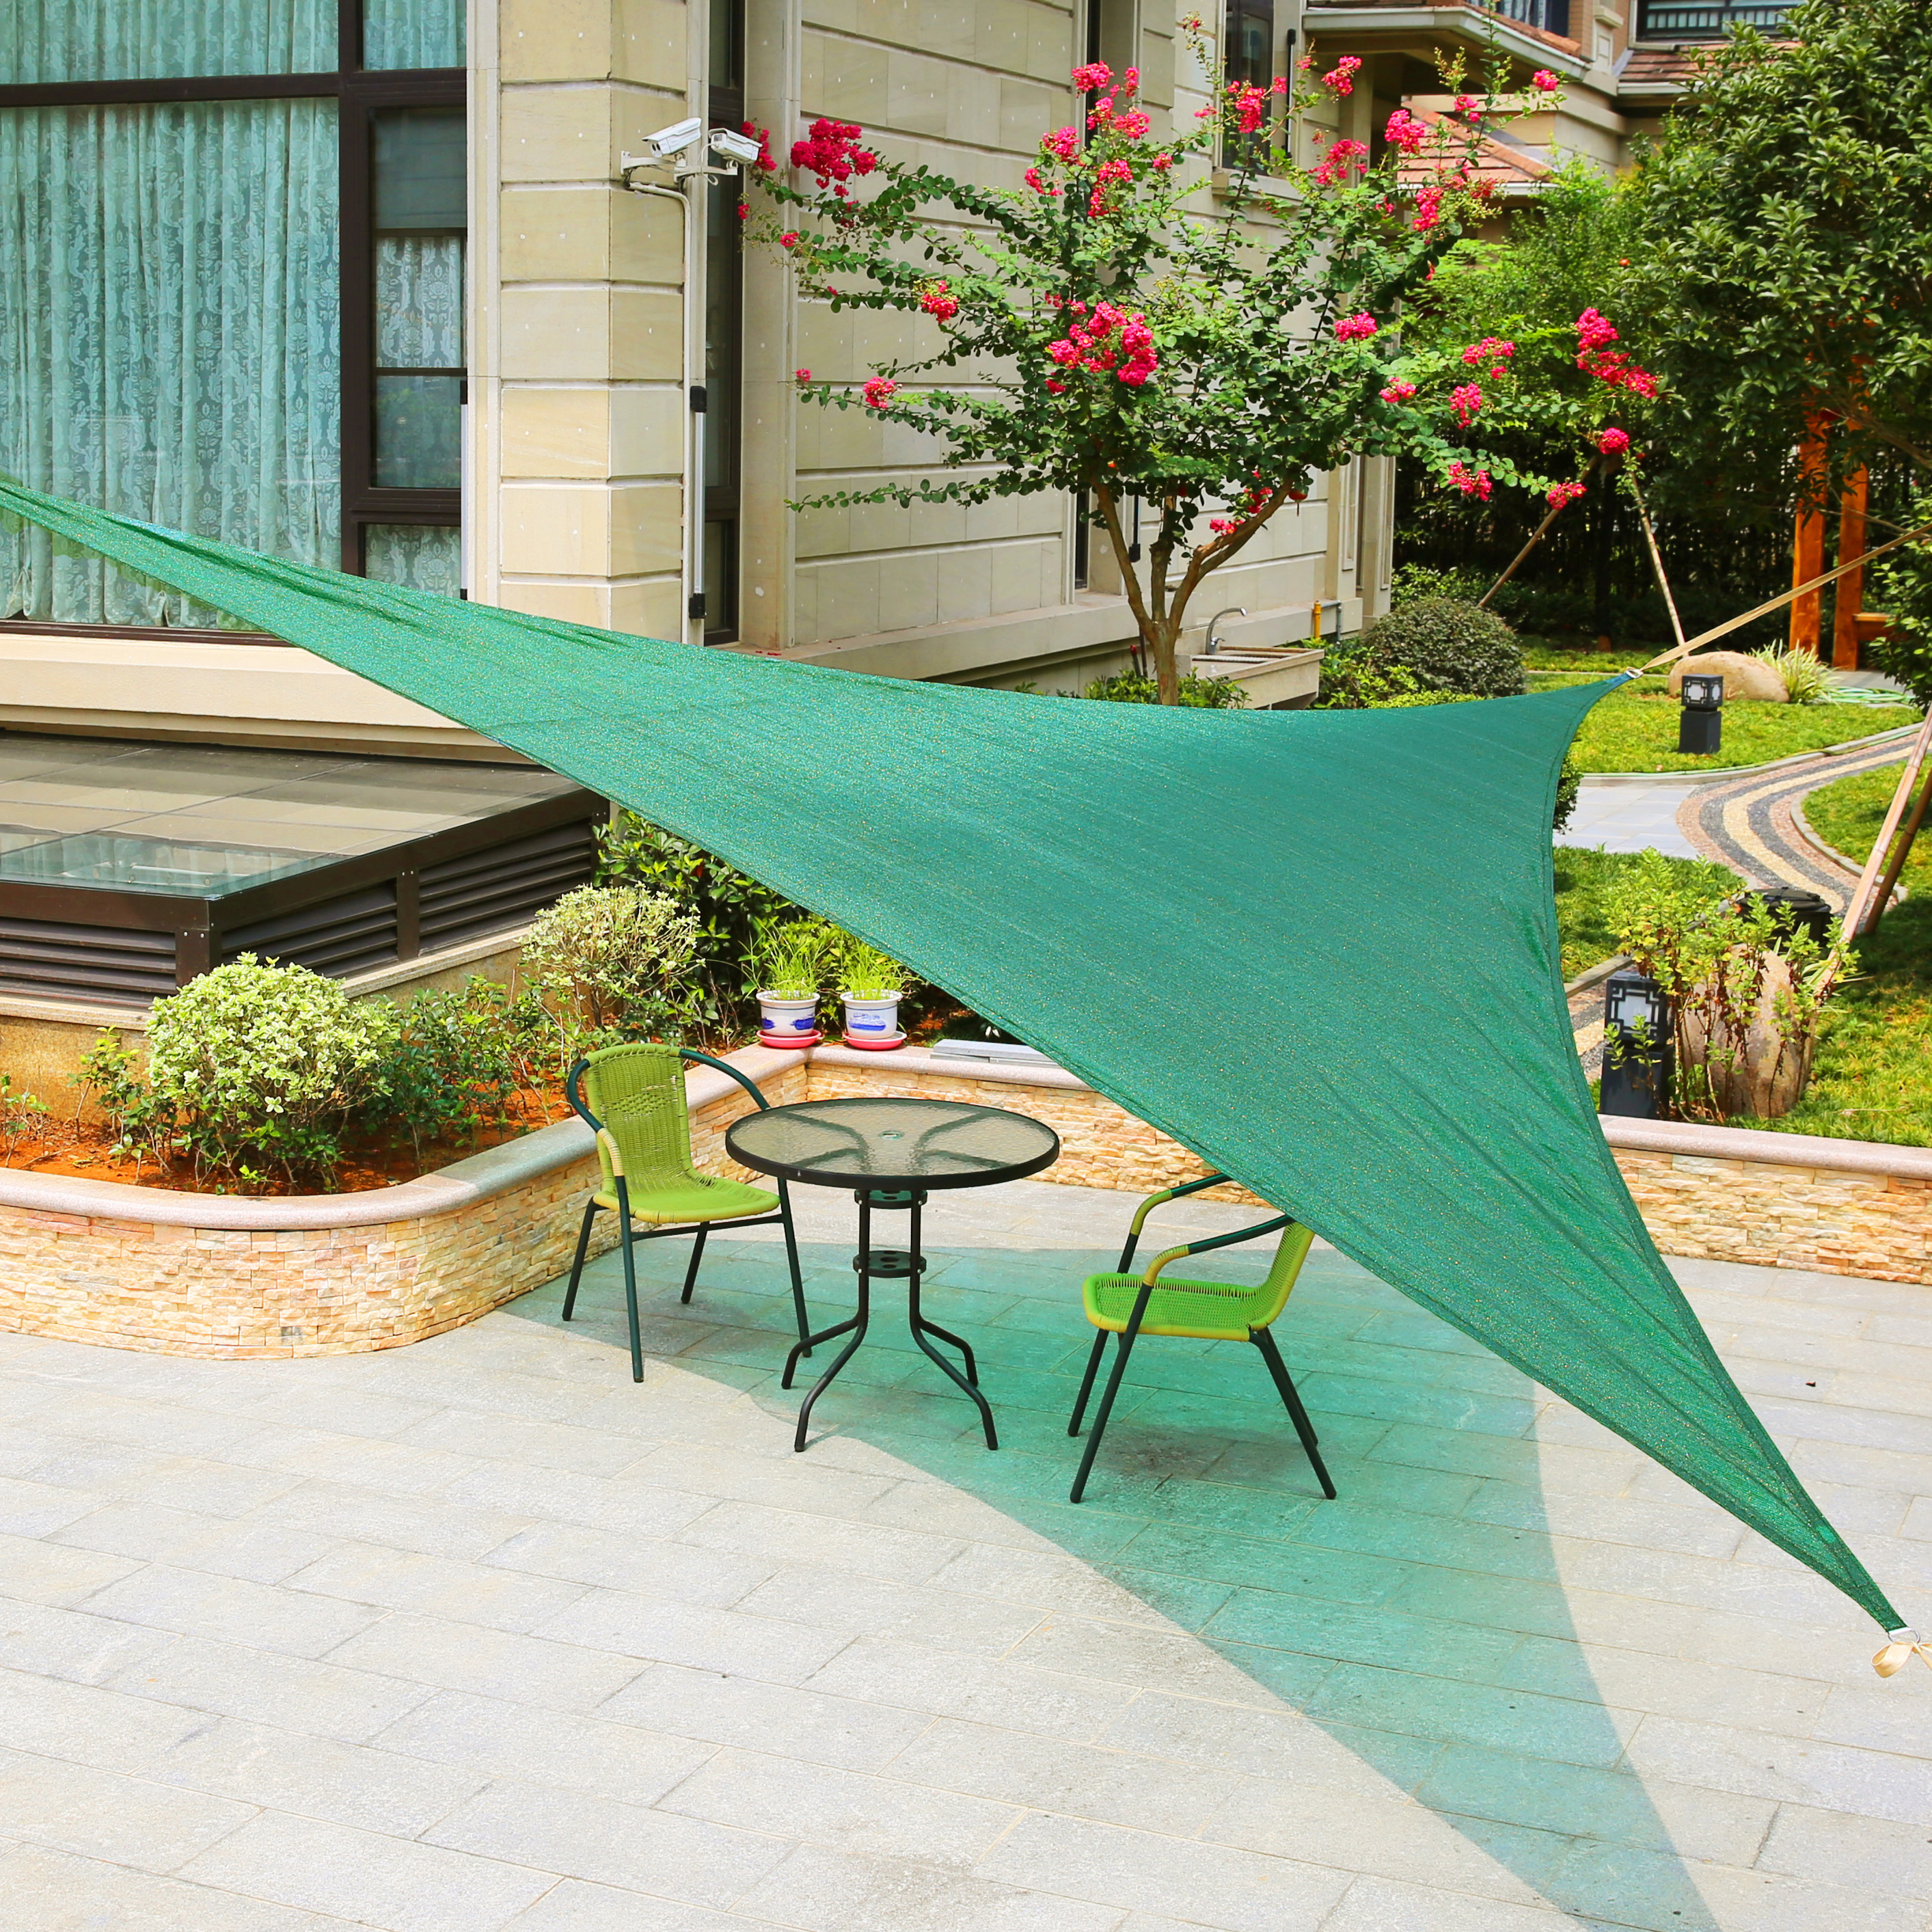 "LyShade 16'5"" Right Triangle Sun Shade Sail Canopy"